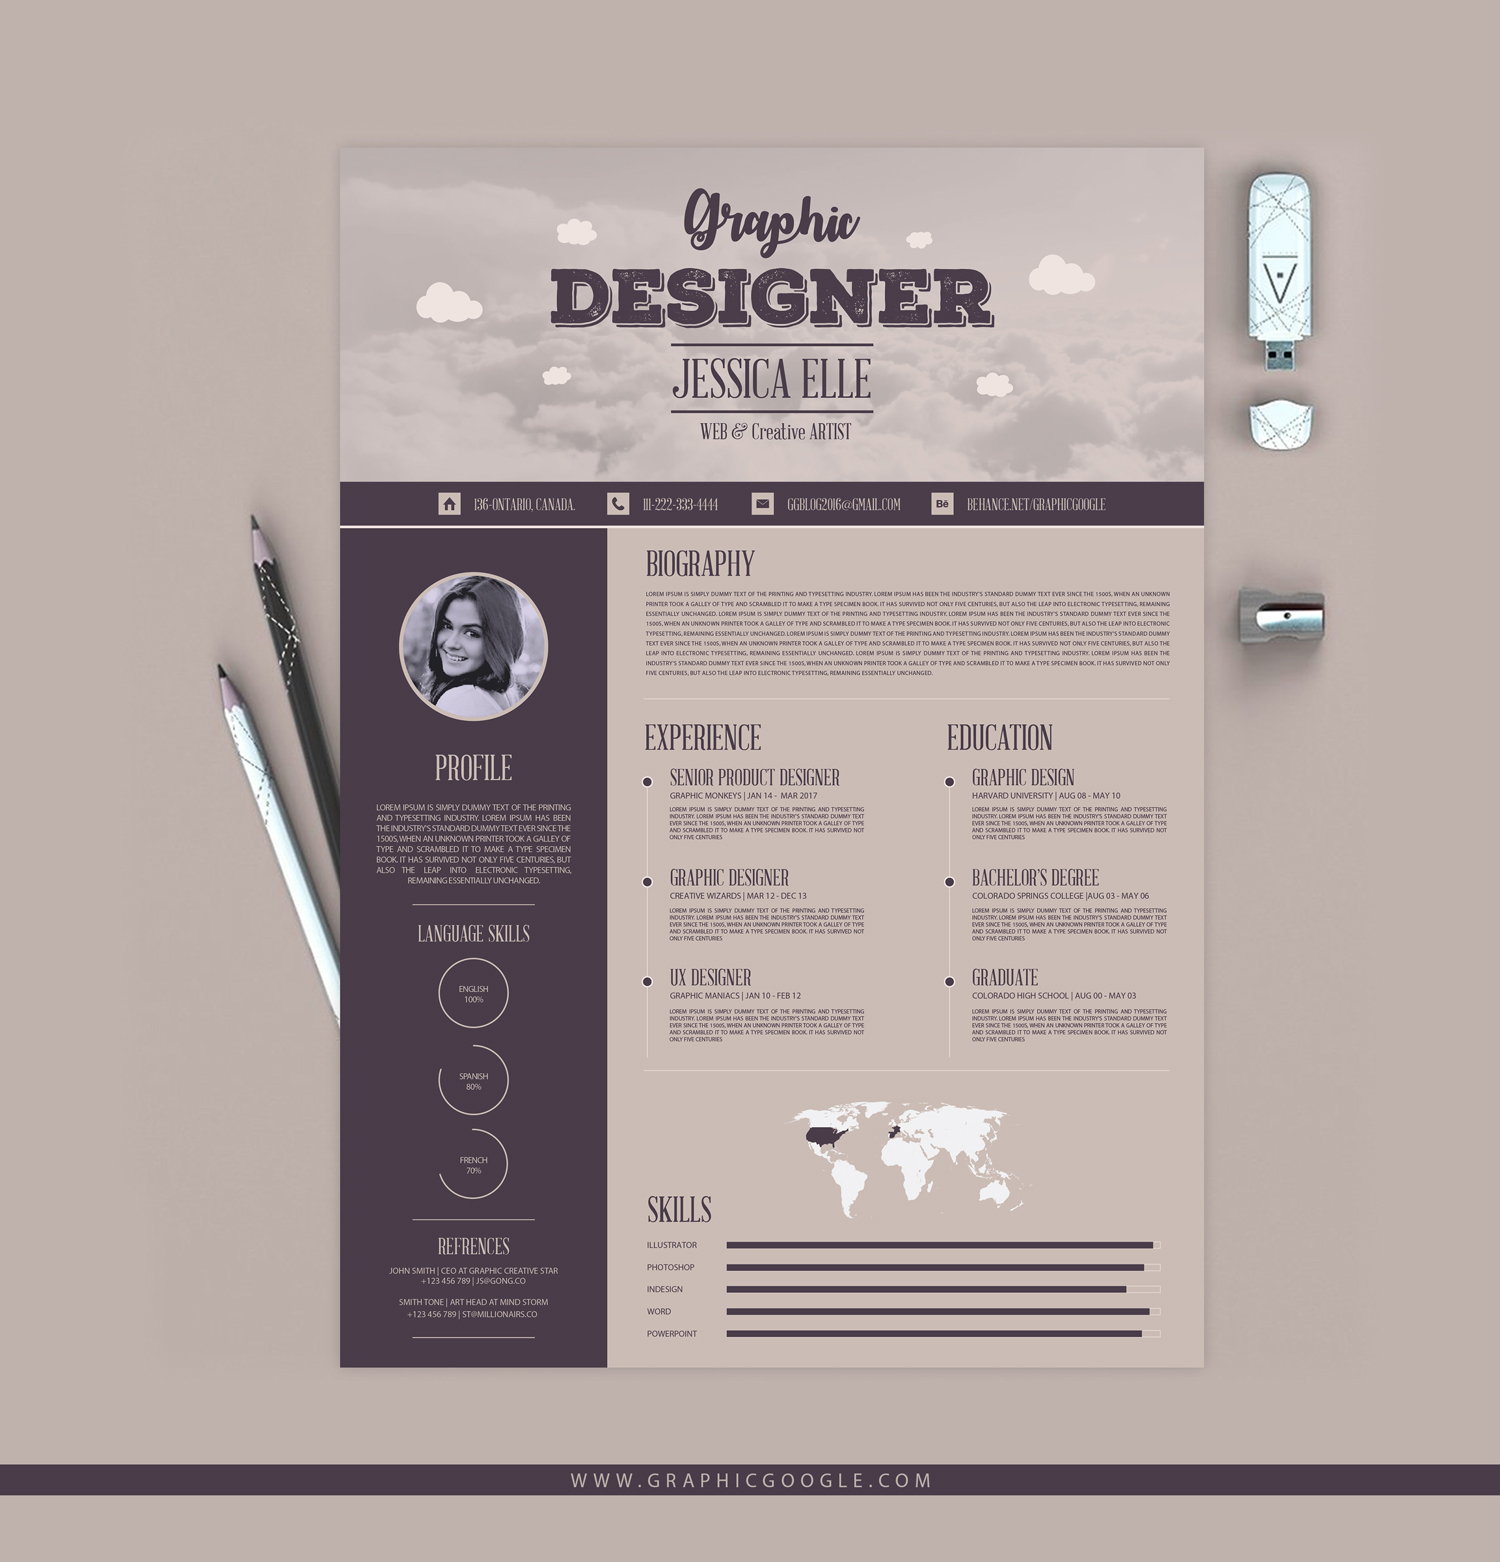 free vintage style designers resume design template